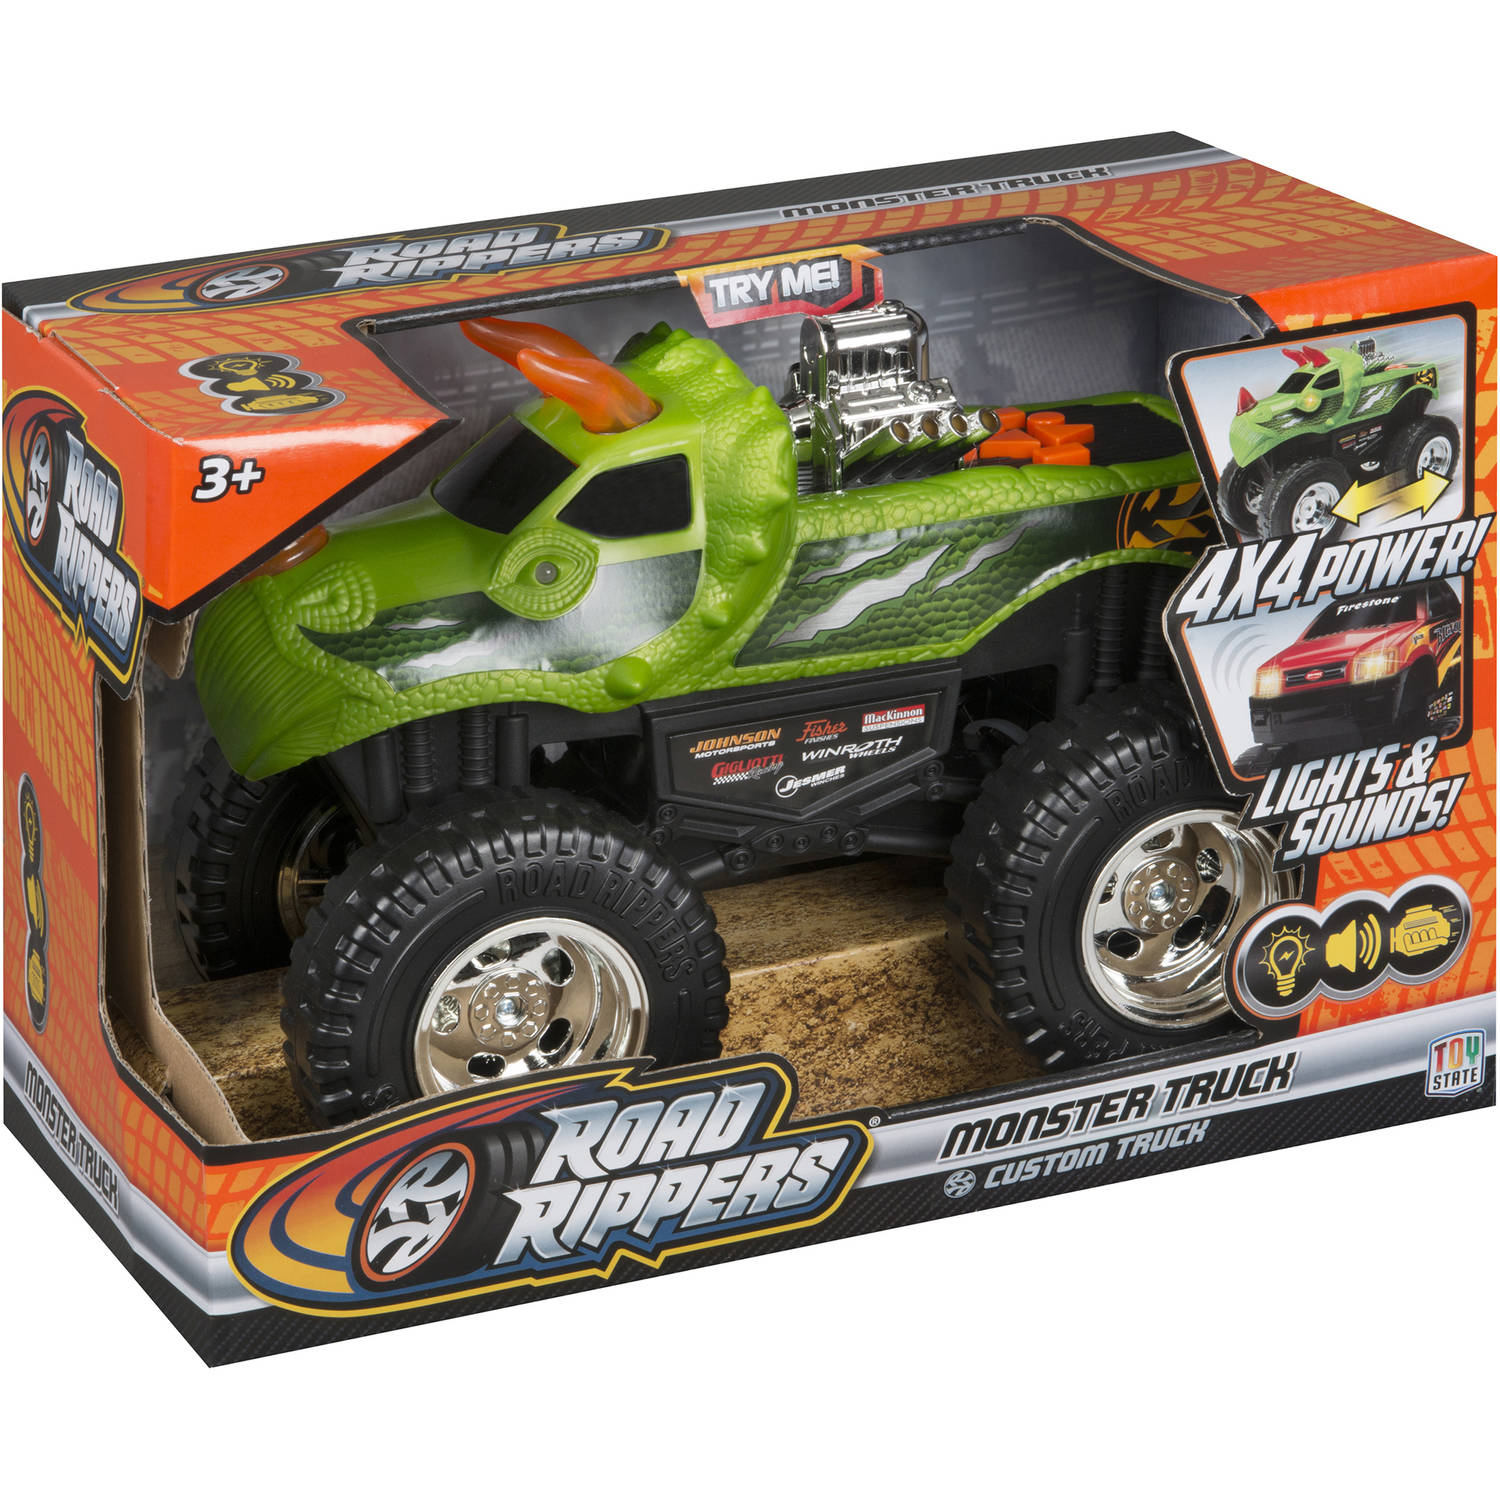 "Road Rippers 10"" Light and Sound 4x4 Monster Truck, DinoRoar"